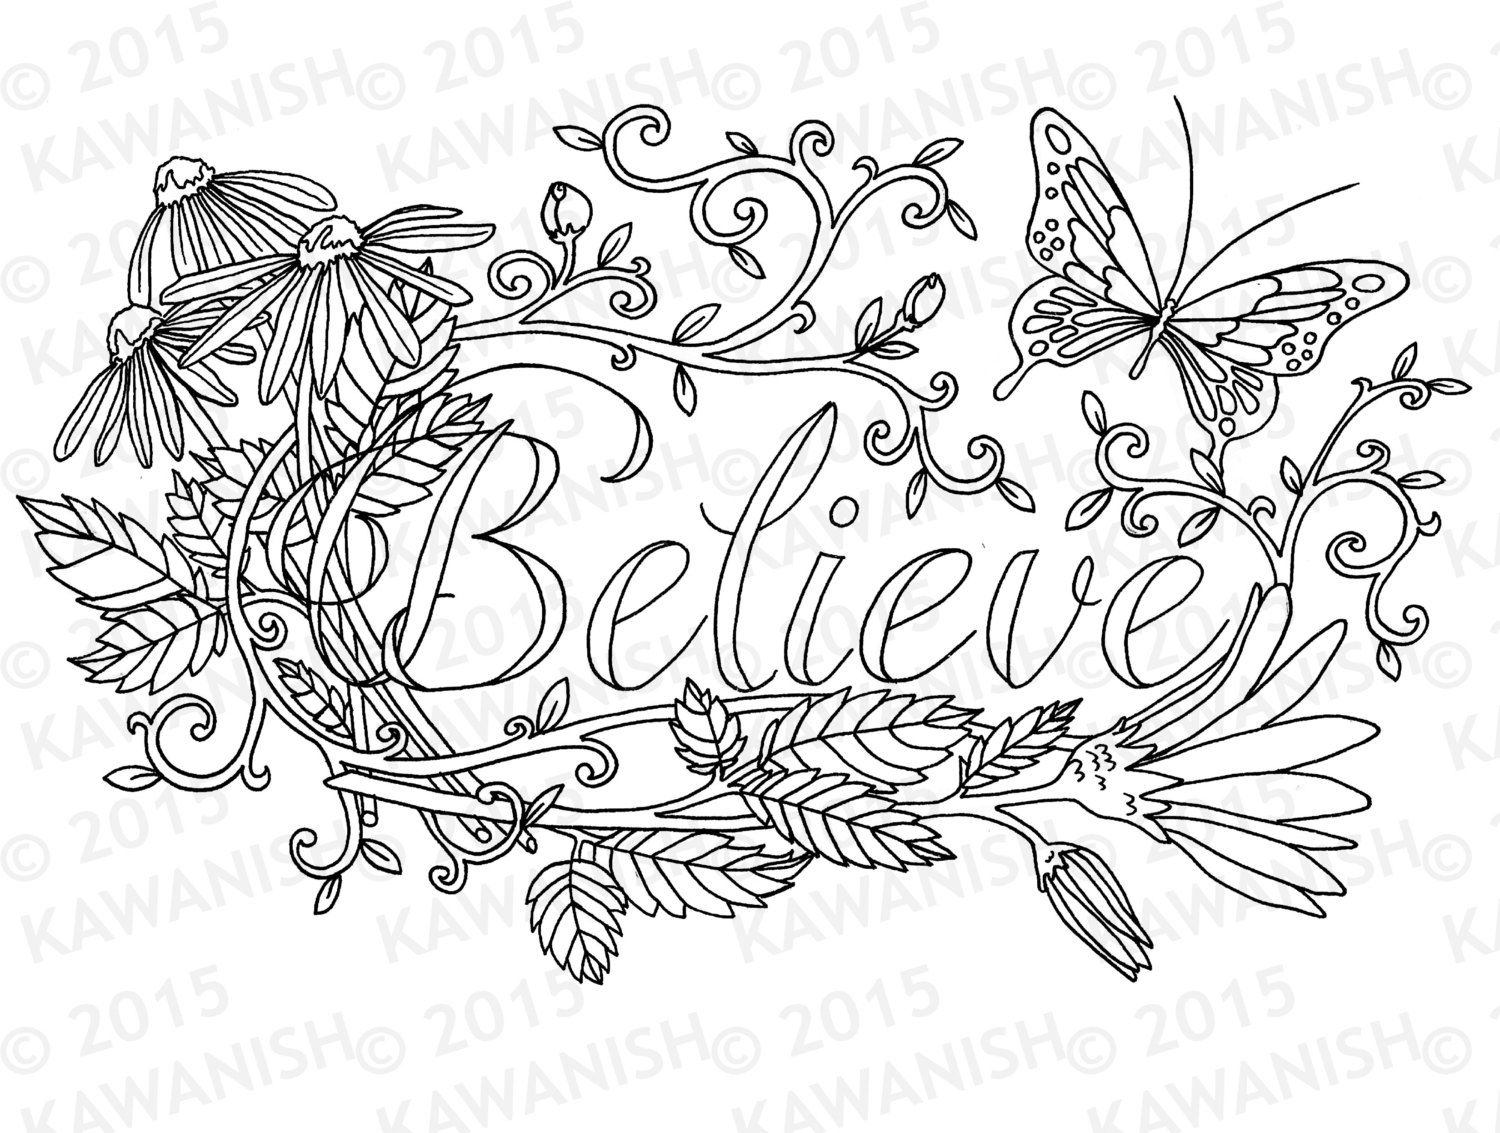 Free coloring pages for adults - Believe Flower Inspirational Adult Coloring Page Gift By Kawanish